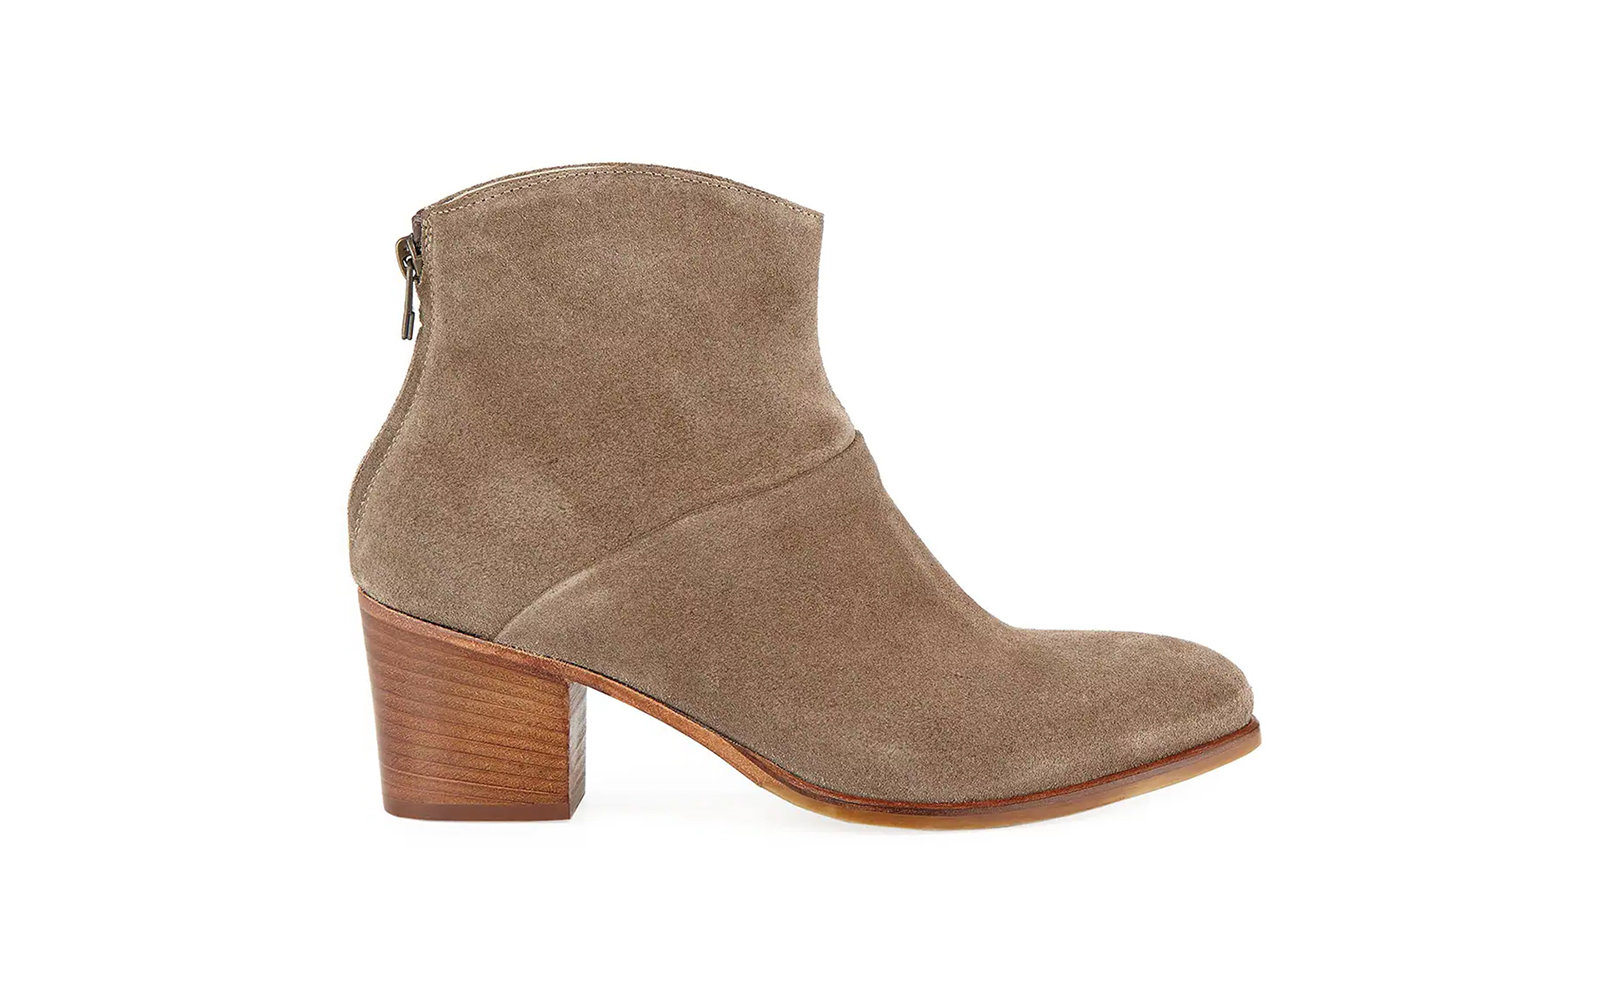 04b739b8f2 Best Ankle Boots: Italeau Daniela Waterproof Suede Ankle Booties